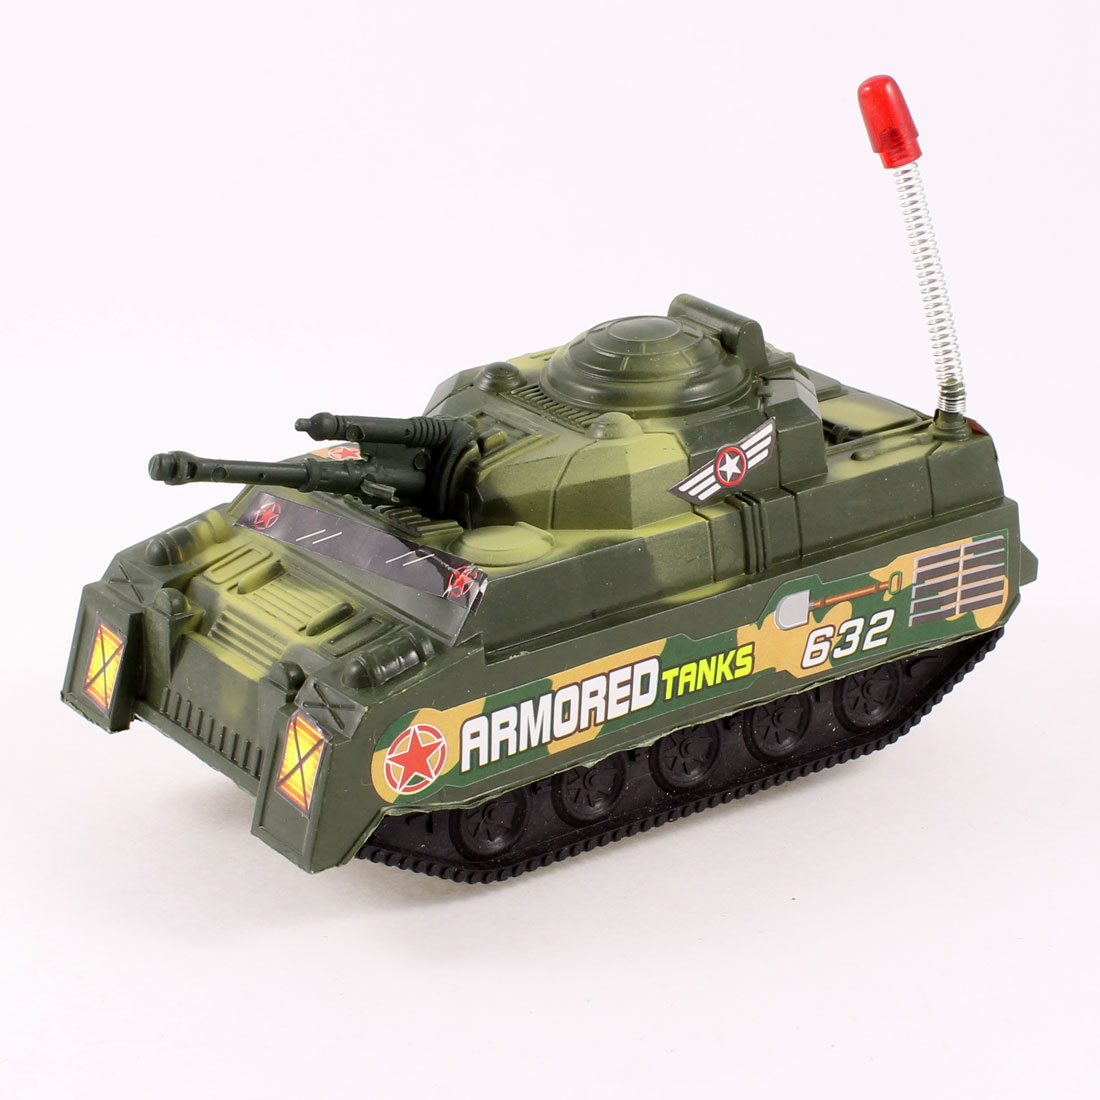 Children Plastic Small Tank Model Pull String Toy Green Black